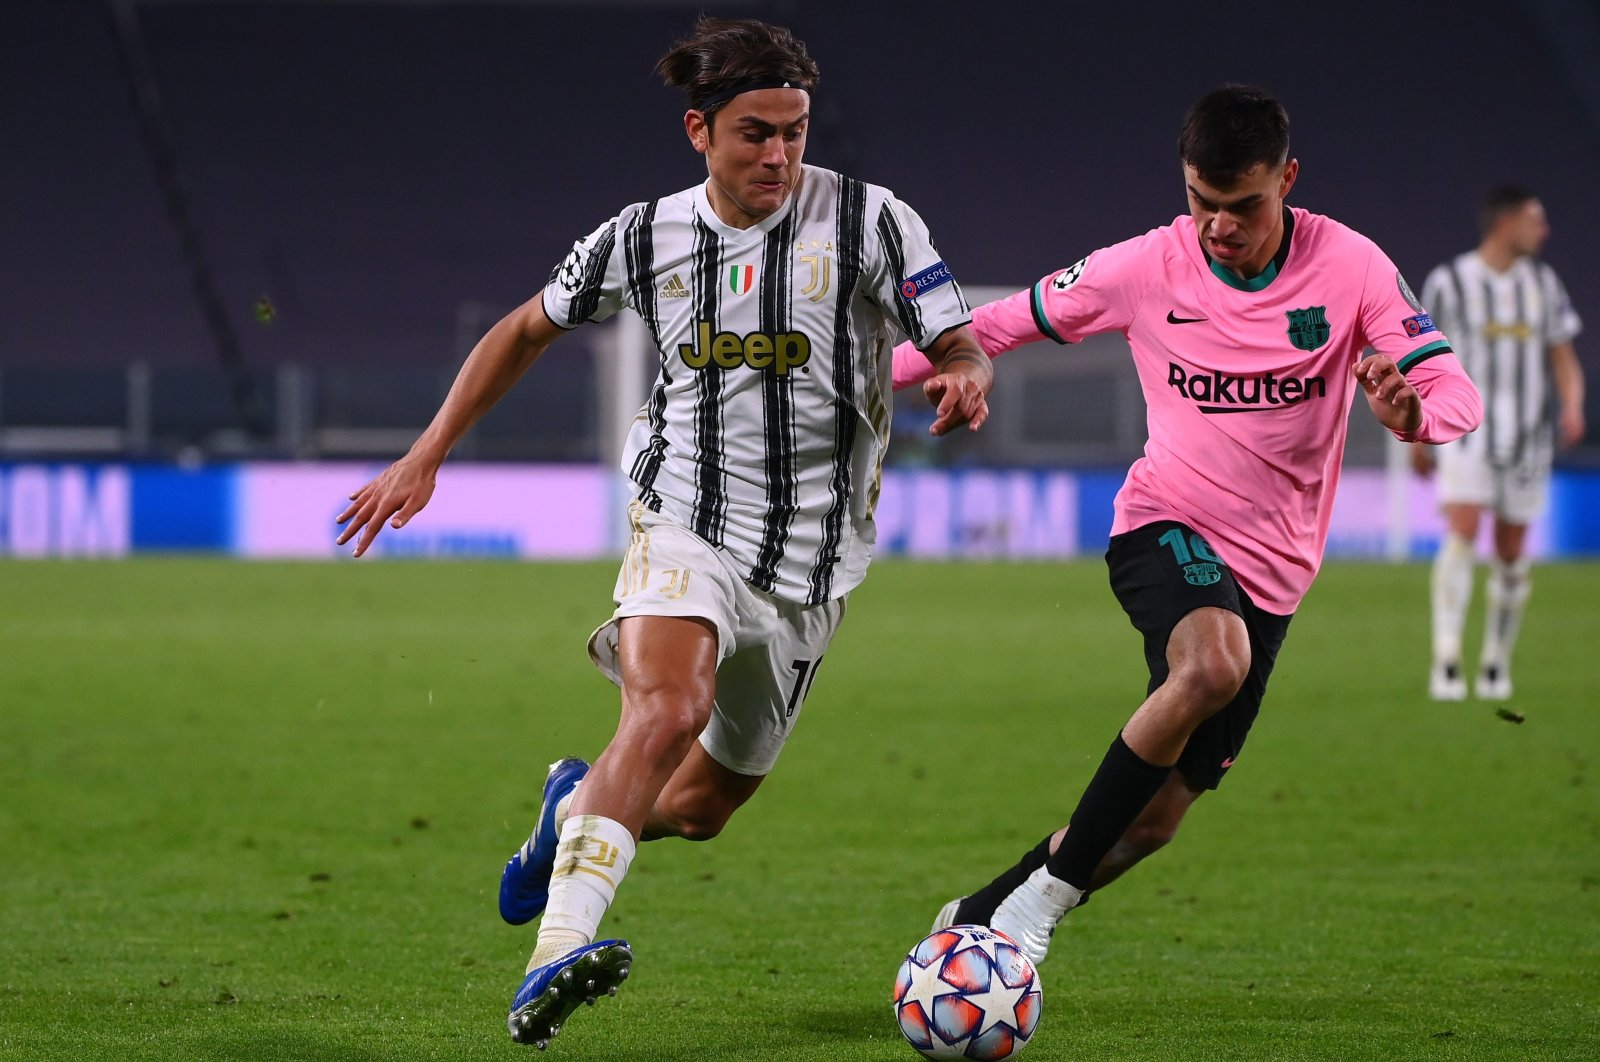 Barcelona's Pedri (R) fights for the ball with Juventus' Paulo Dybala during the Champions League match in Turin, Italy, Oct. 28, 2020. (AFP Photo)